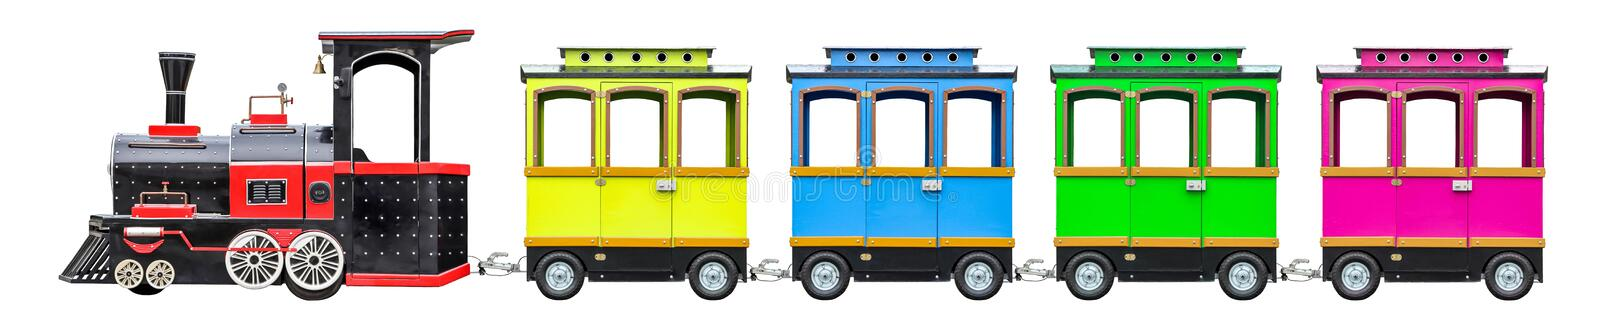 Locomotive for kids with wagons. Children train with wheels royalty free stock photo